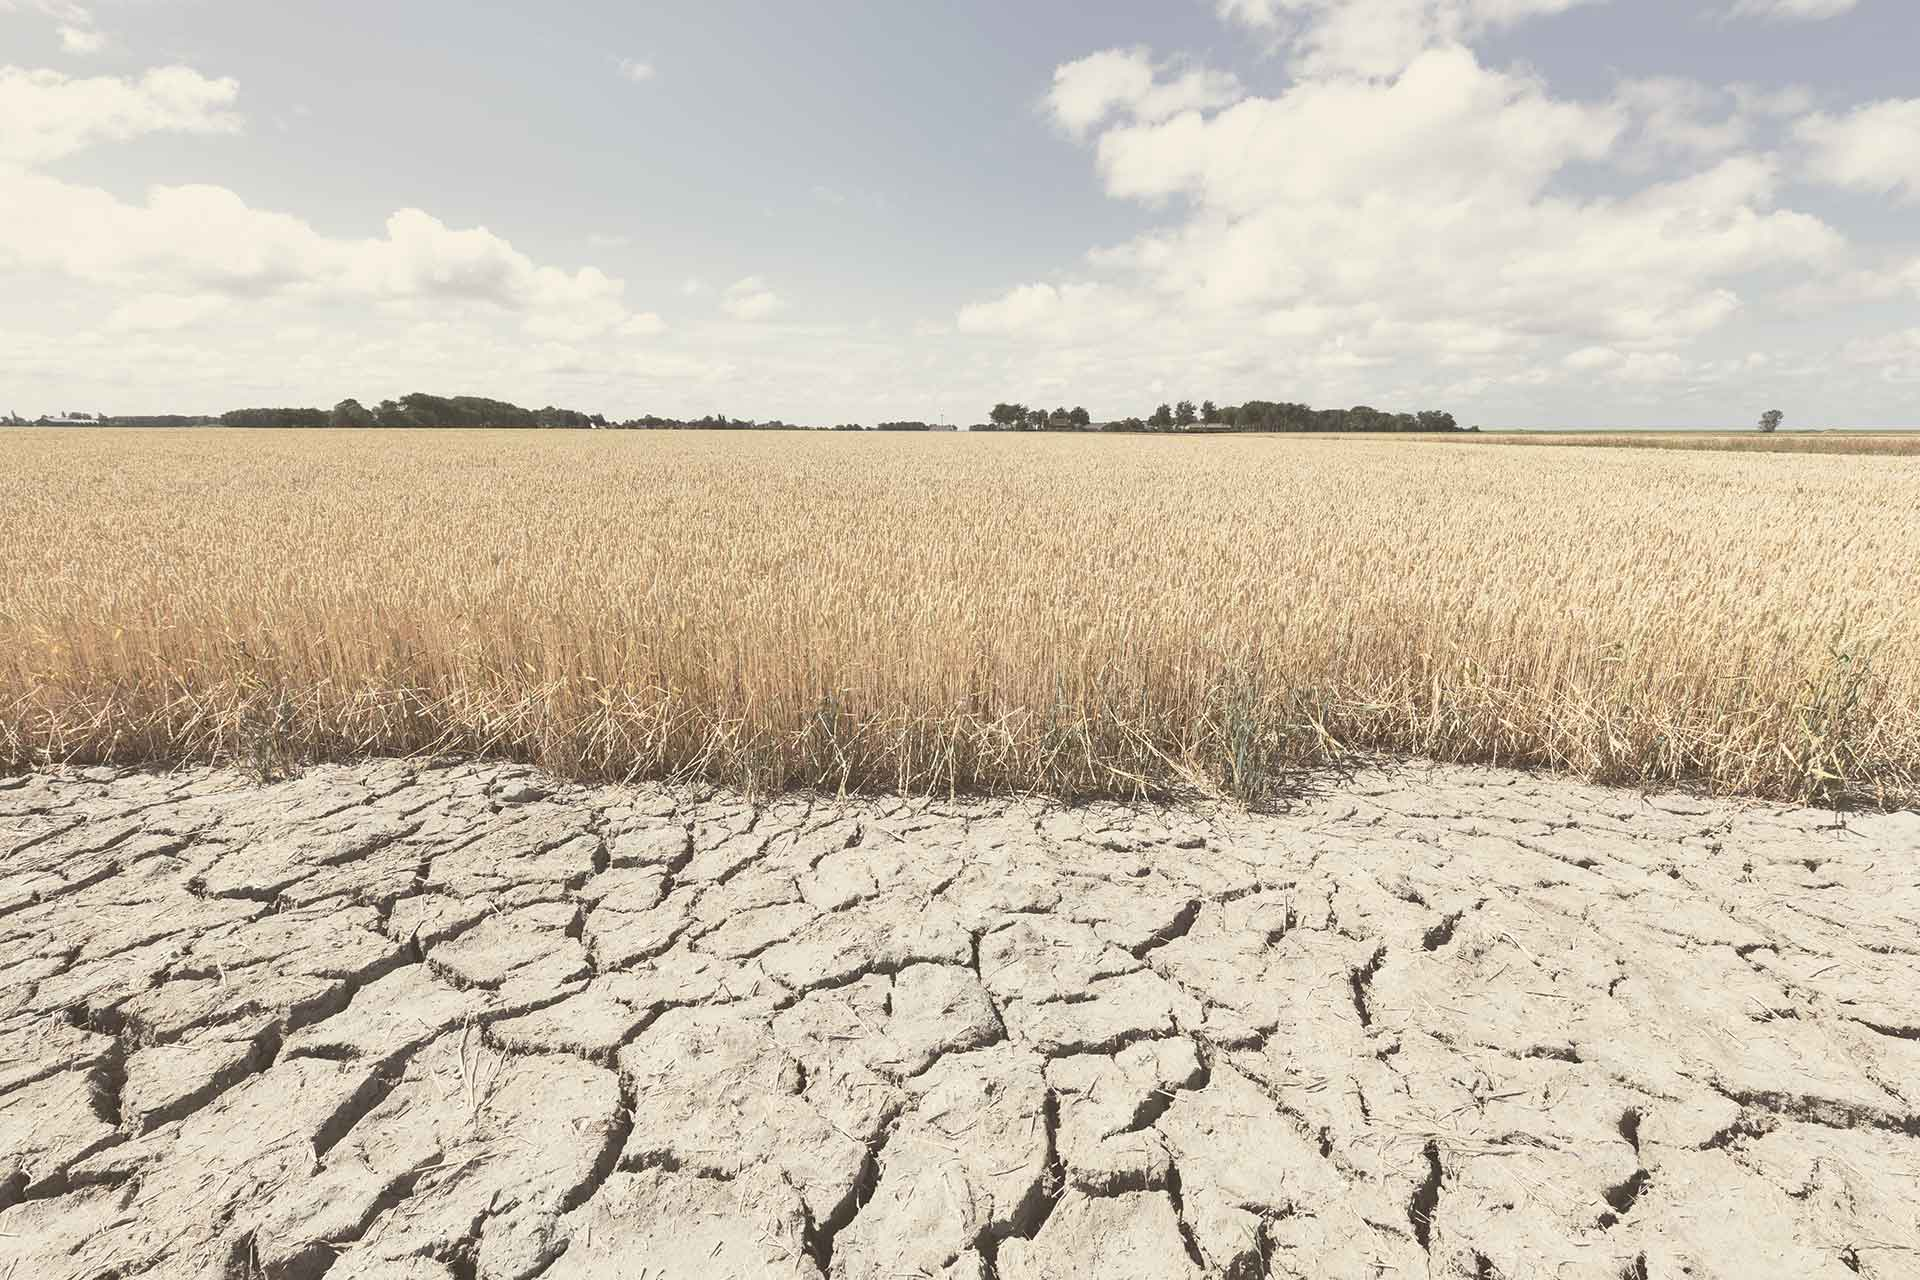 dry soil in a field